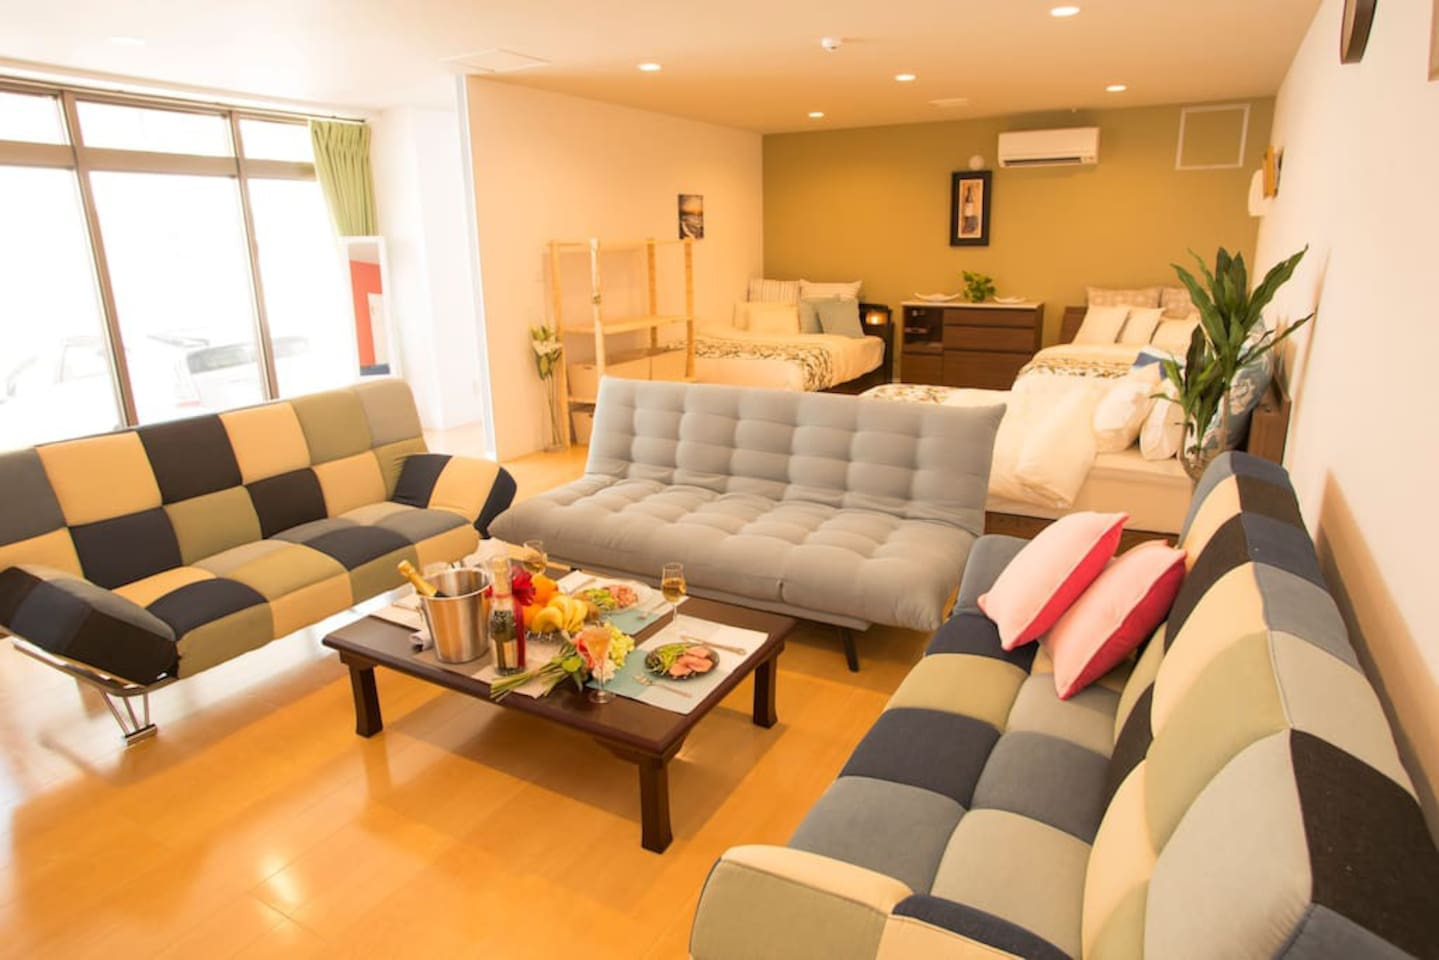 Welcome to our page! Let's get started a room tour:) はいさーい!ご覧いただきありがとうございます^^